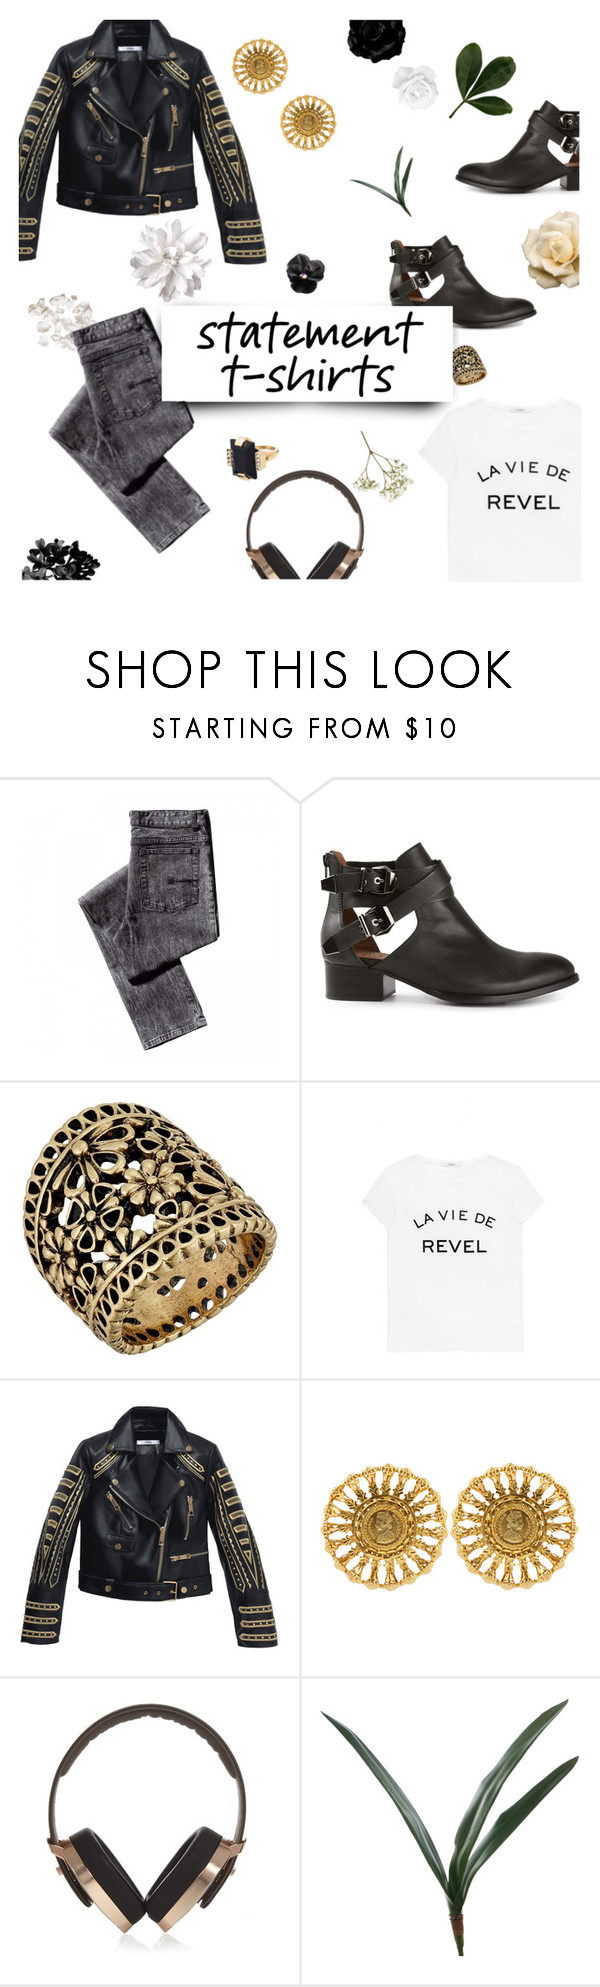 """La Vie de Revel"" by clampigirl ❤ liked on Polyvore featuring Jeffrey Campbell, Lucky Brand, Kasturjewels, Pryma, Marni, Leather, blackandwhite, Tshirt, goldjewelry and statementtshirt"